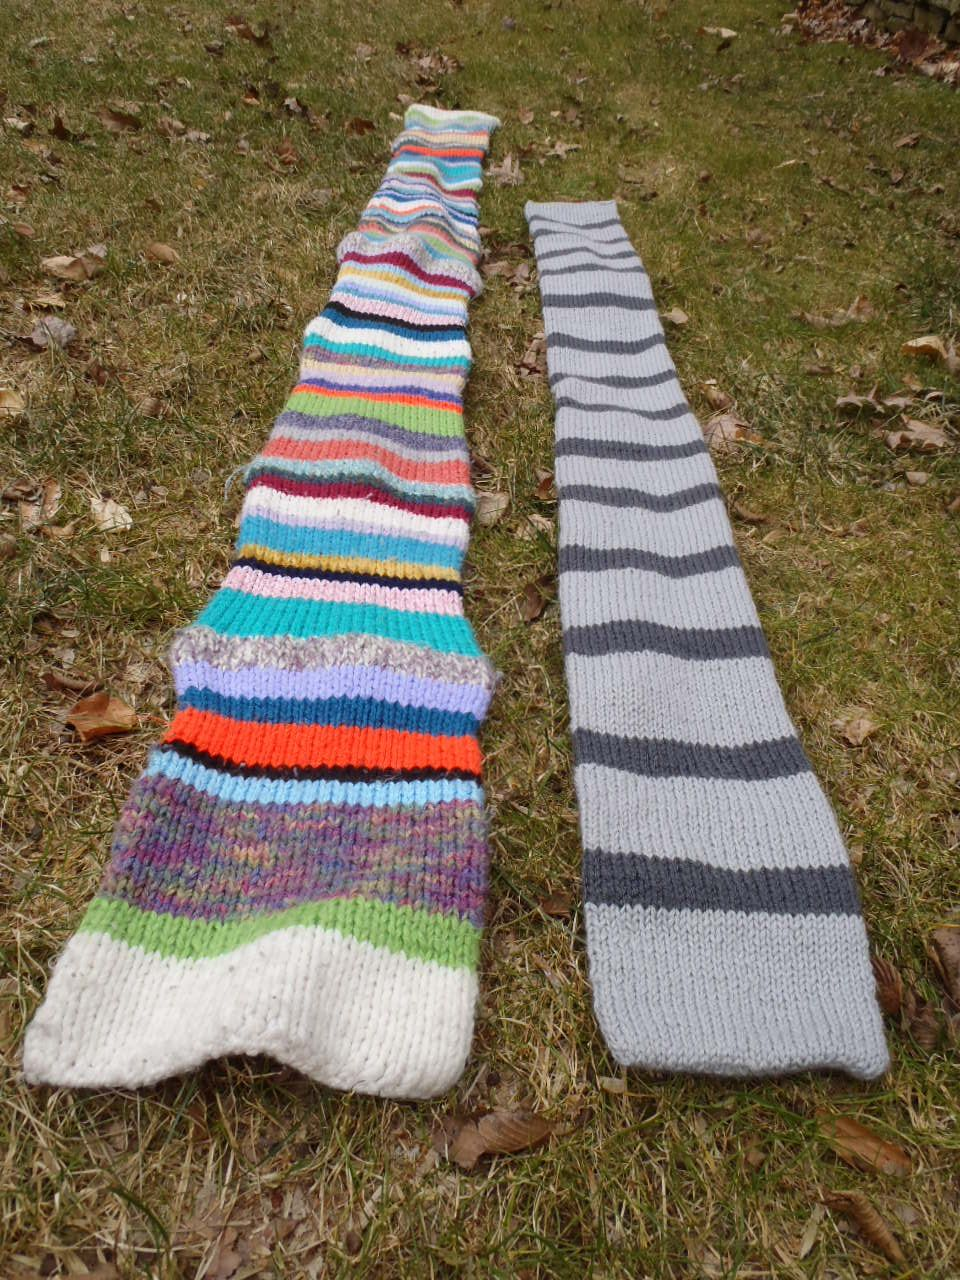 Stana S Critters Etc Knitting Pattern For Funky Stripes Scarf